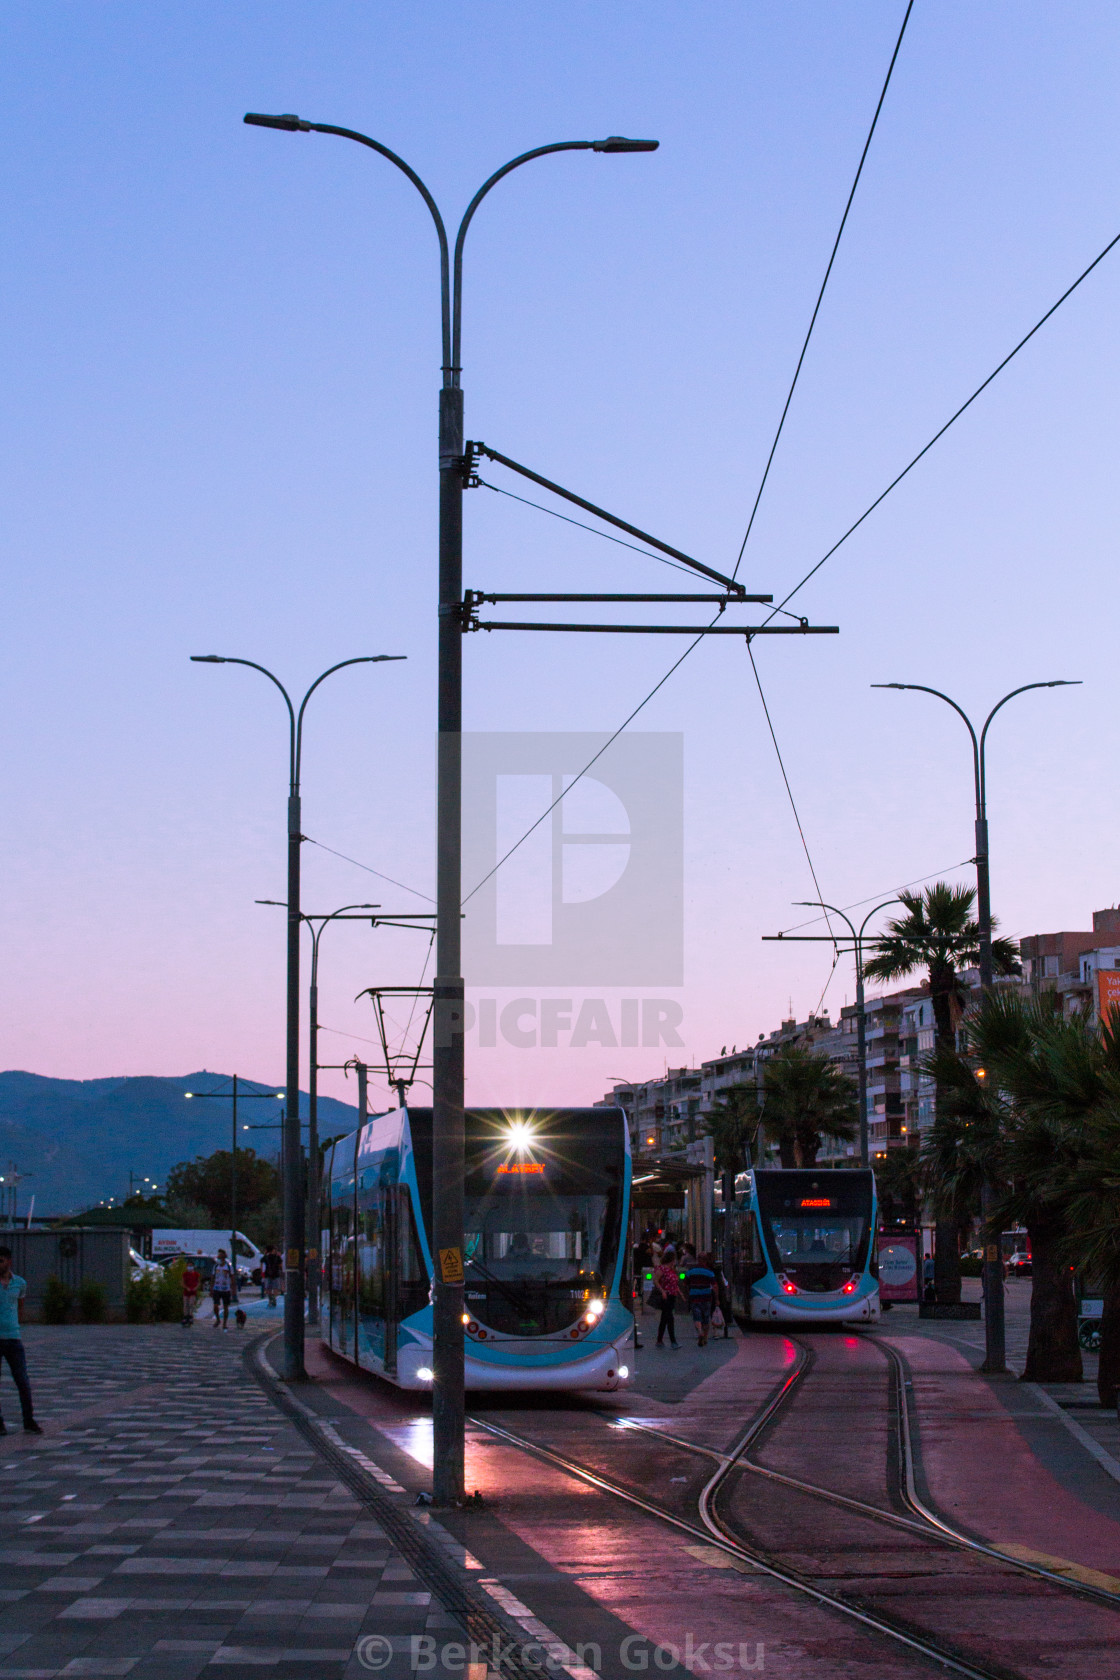 """tram in the city during sunset izmir turkey"" stock image"